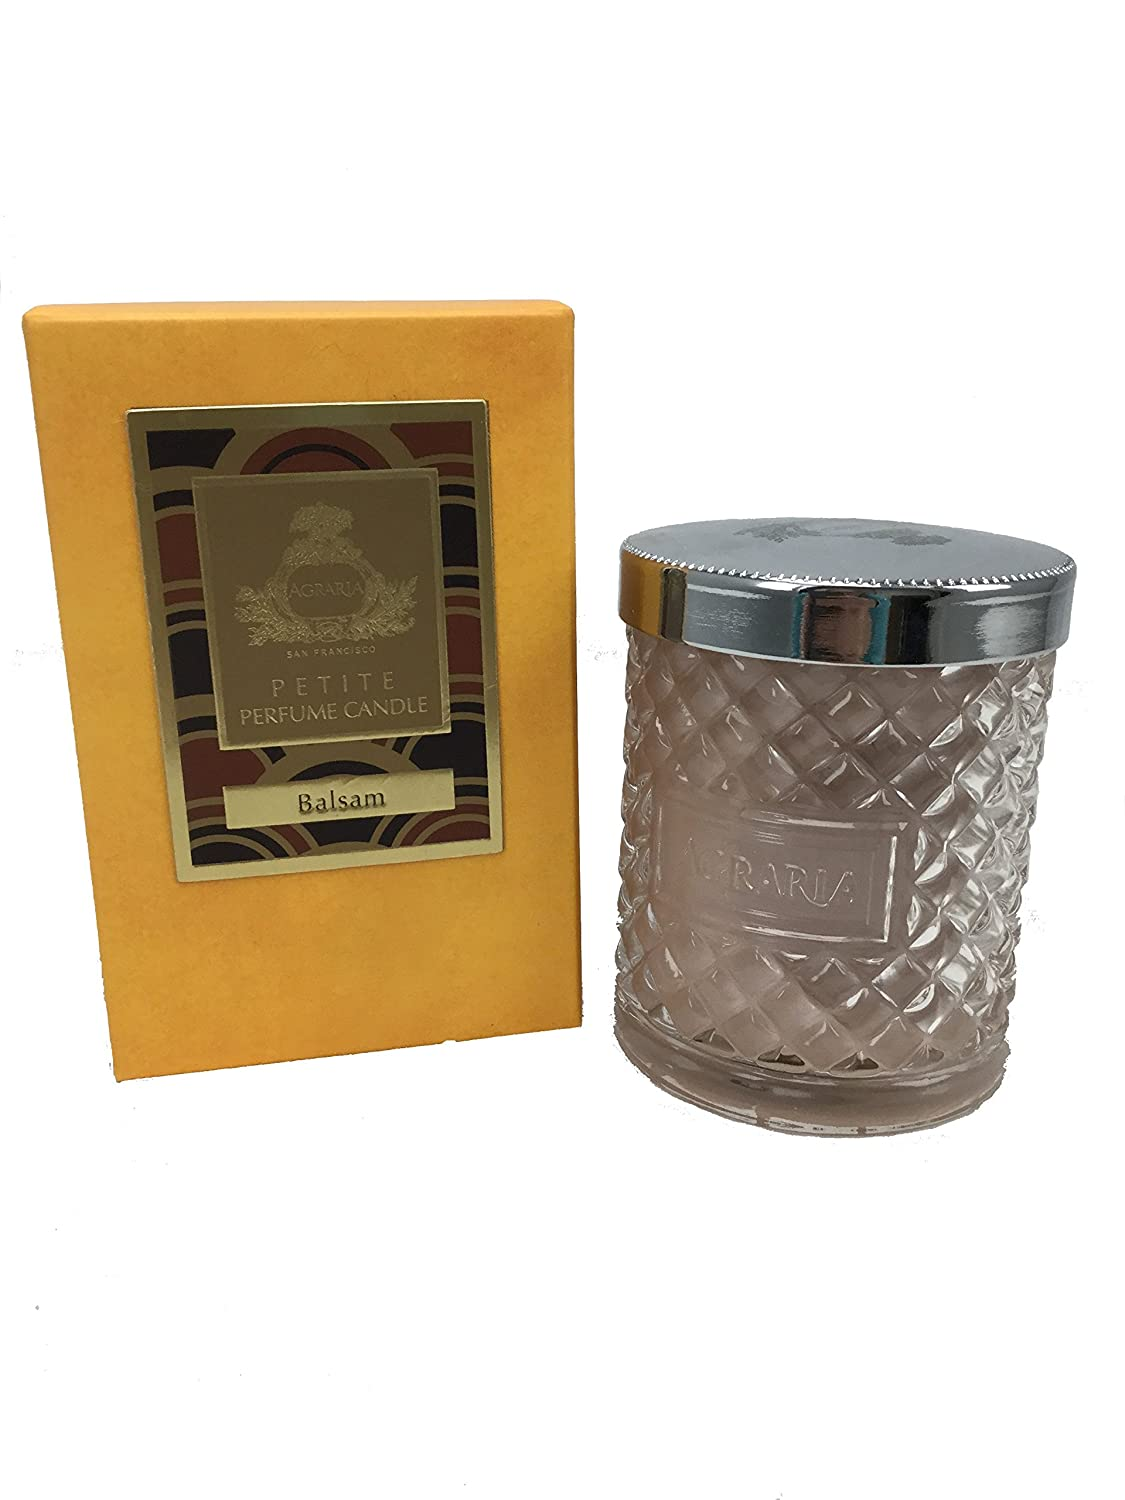 Agraria San Francisco Crystal Cane Candle, Balsam, 3.4 Ounce by Agraria San Francisco 19153